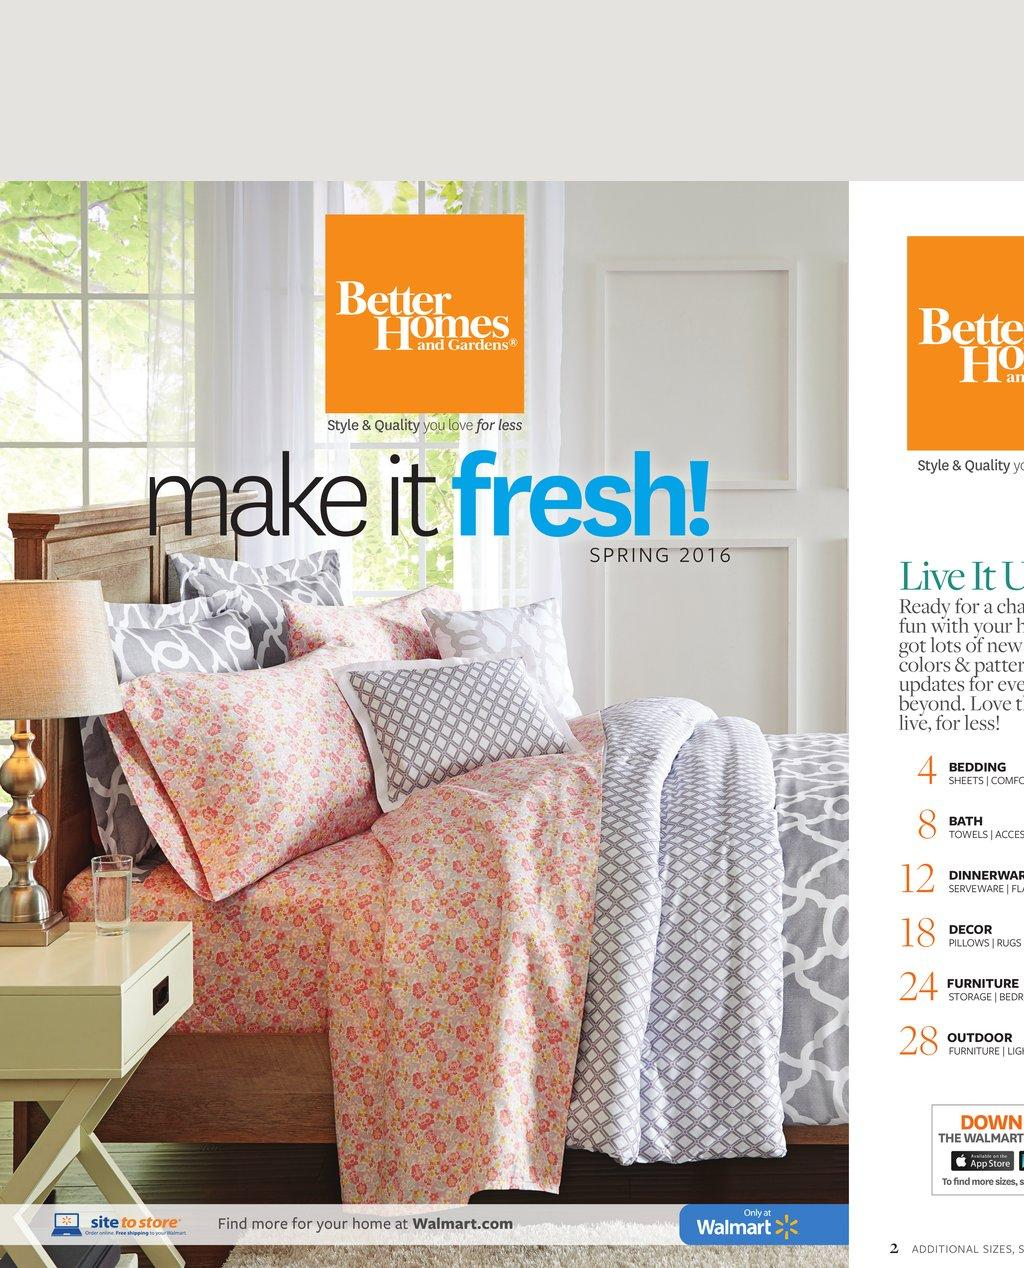 walmart ad bedroom may 2016 better homes products